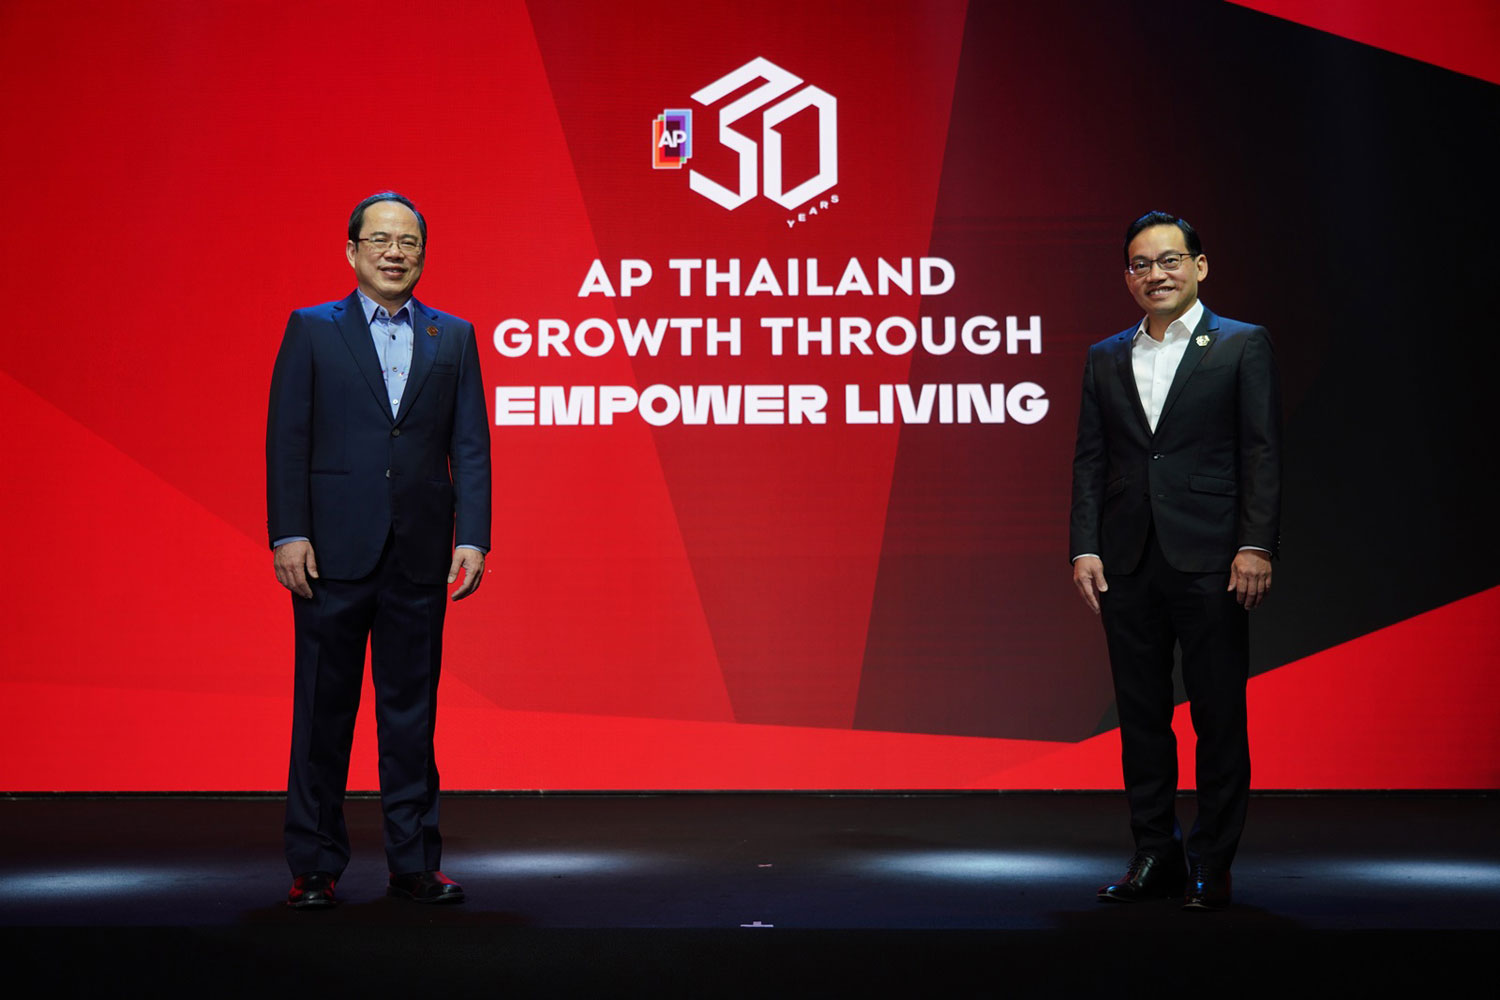 AP Thailand's three decades of strong growth